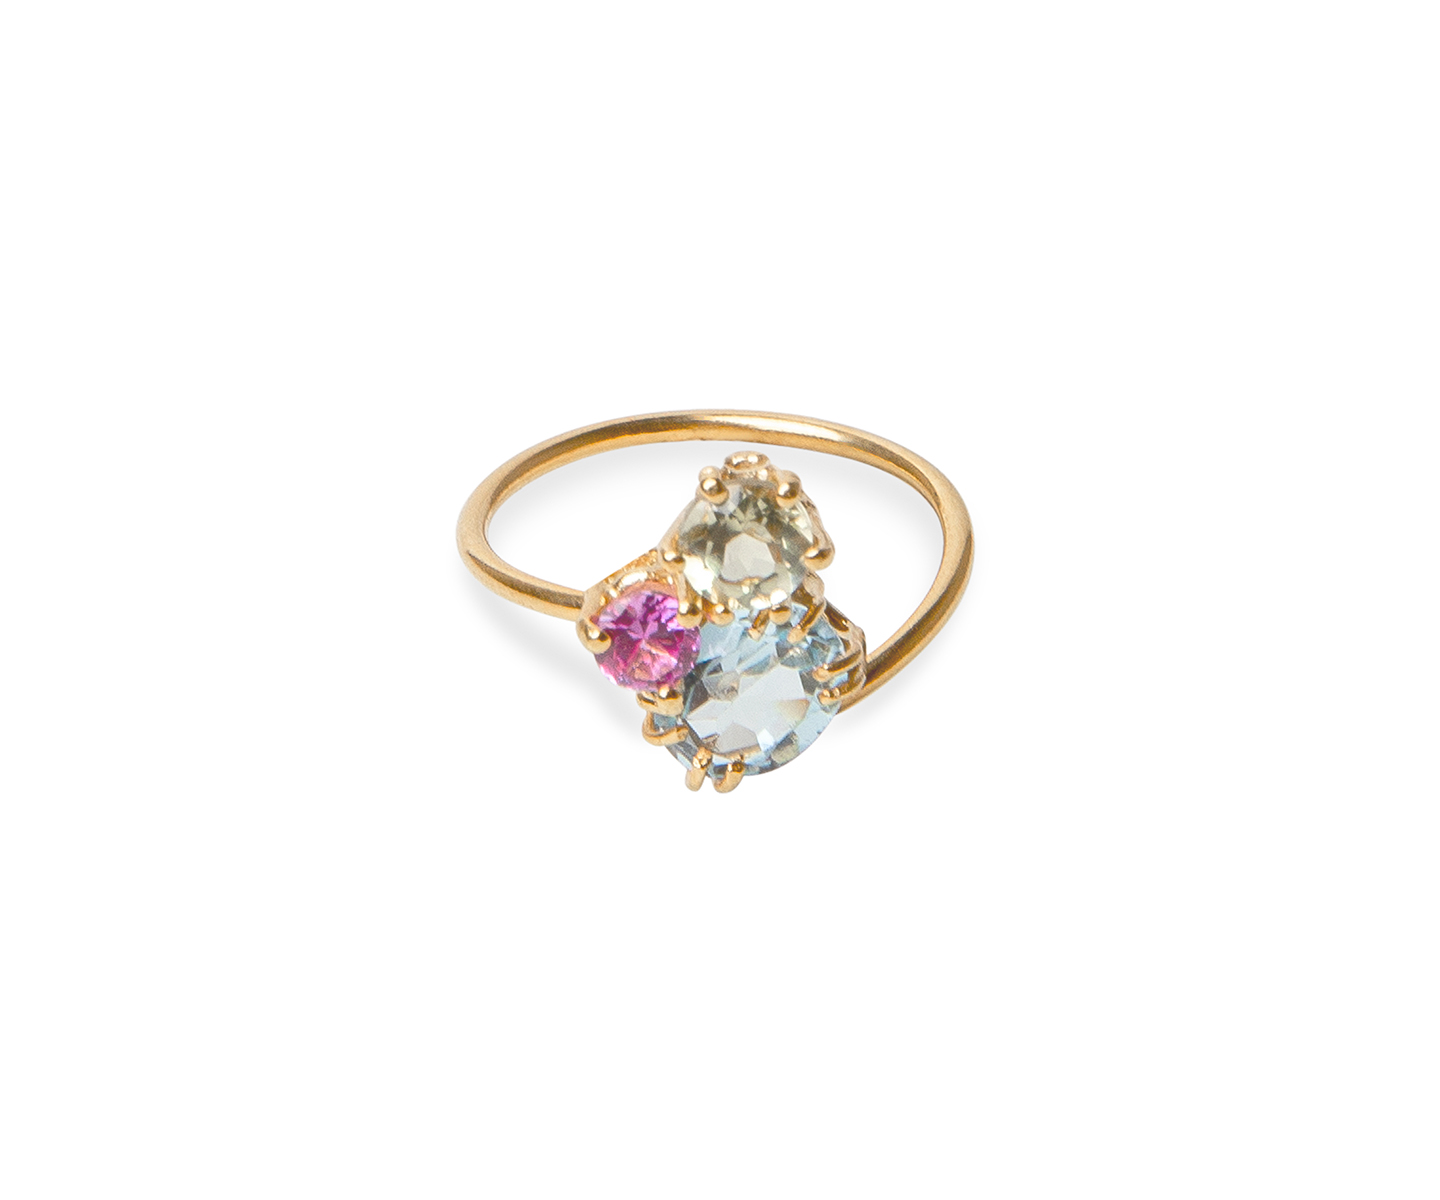 Gold ring ring set with lemon quartz, pink sapphire and blue topaz